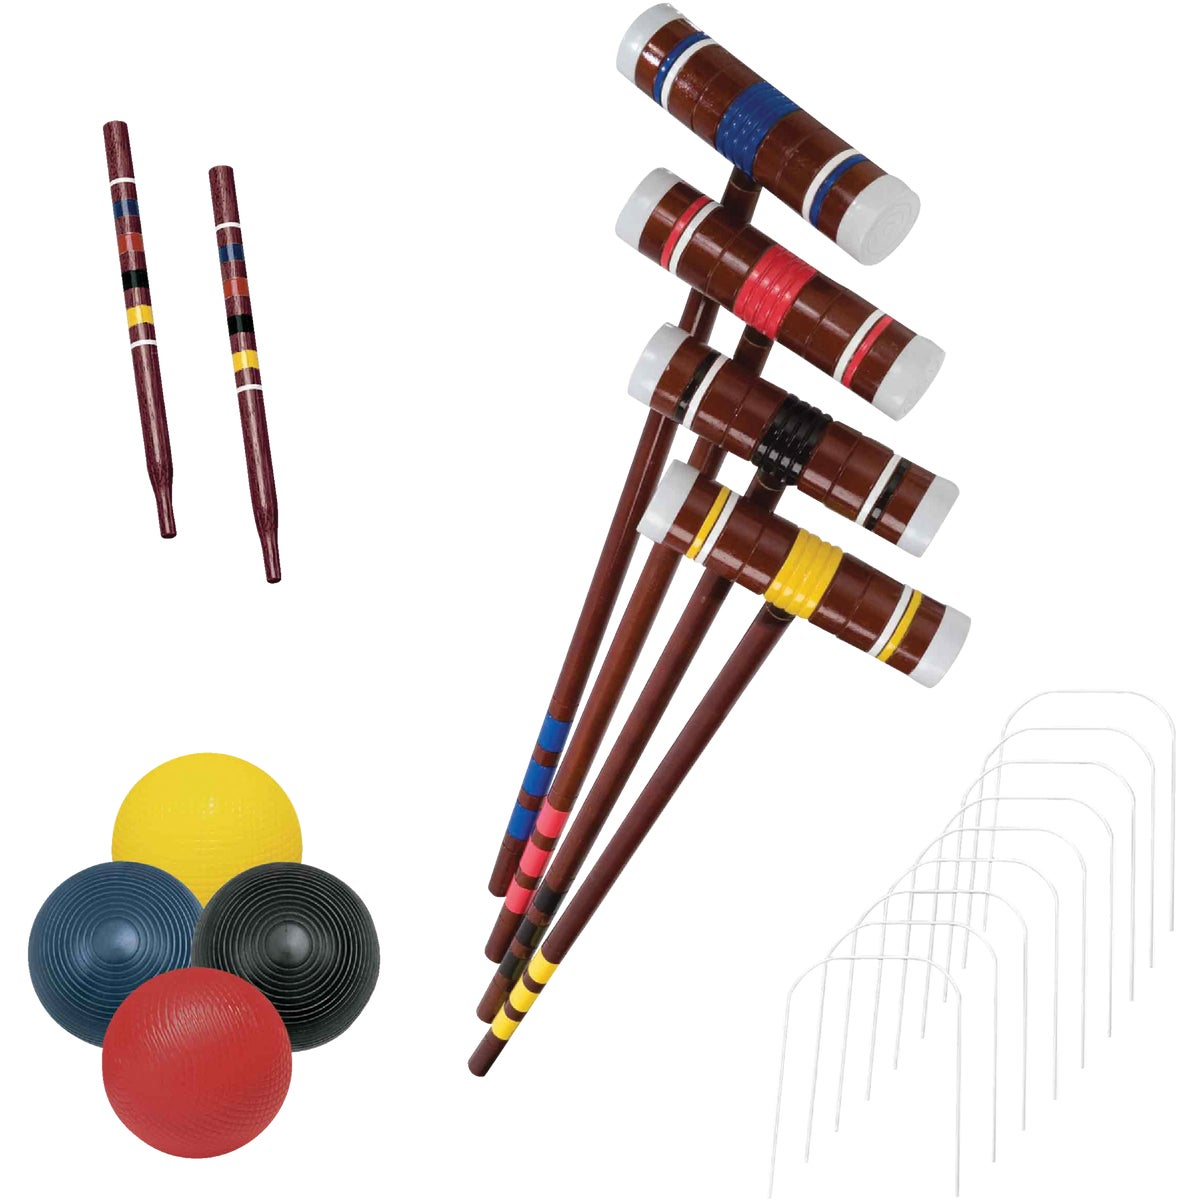 Item 844160, High quality croquet set. Includes 4 wooden mallets, 4 colored balls, (2) 14-inch stakes, and 9 weather-coated wickets.